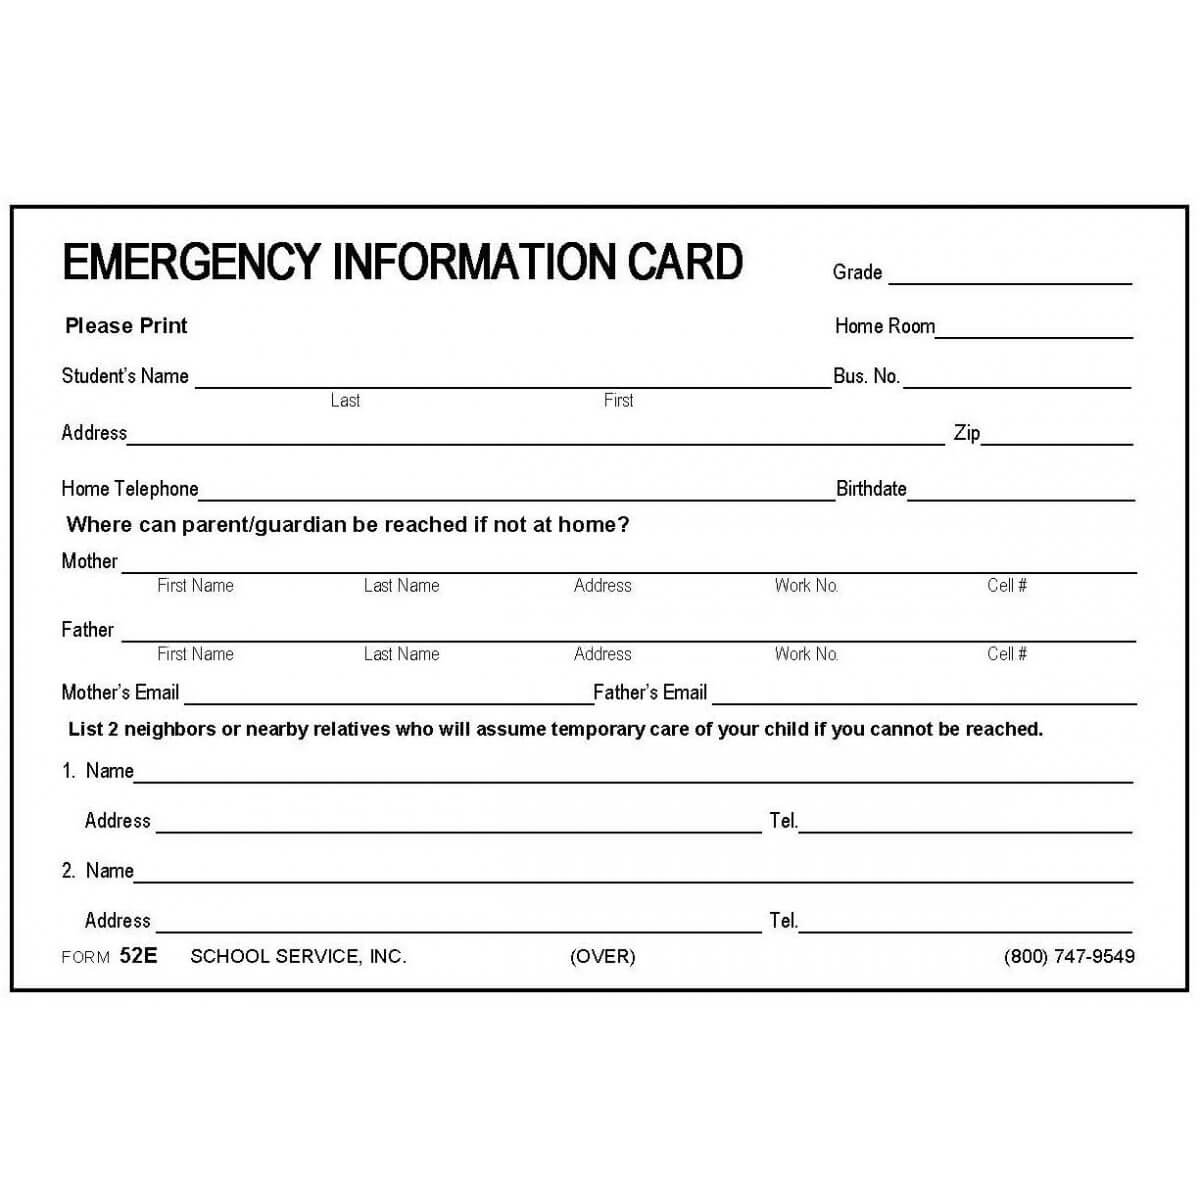 014 Emergency Contact Form Template Ideas Someka Excellent within Emergency Contact Card Template